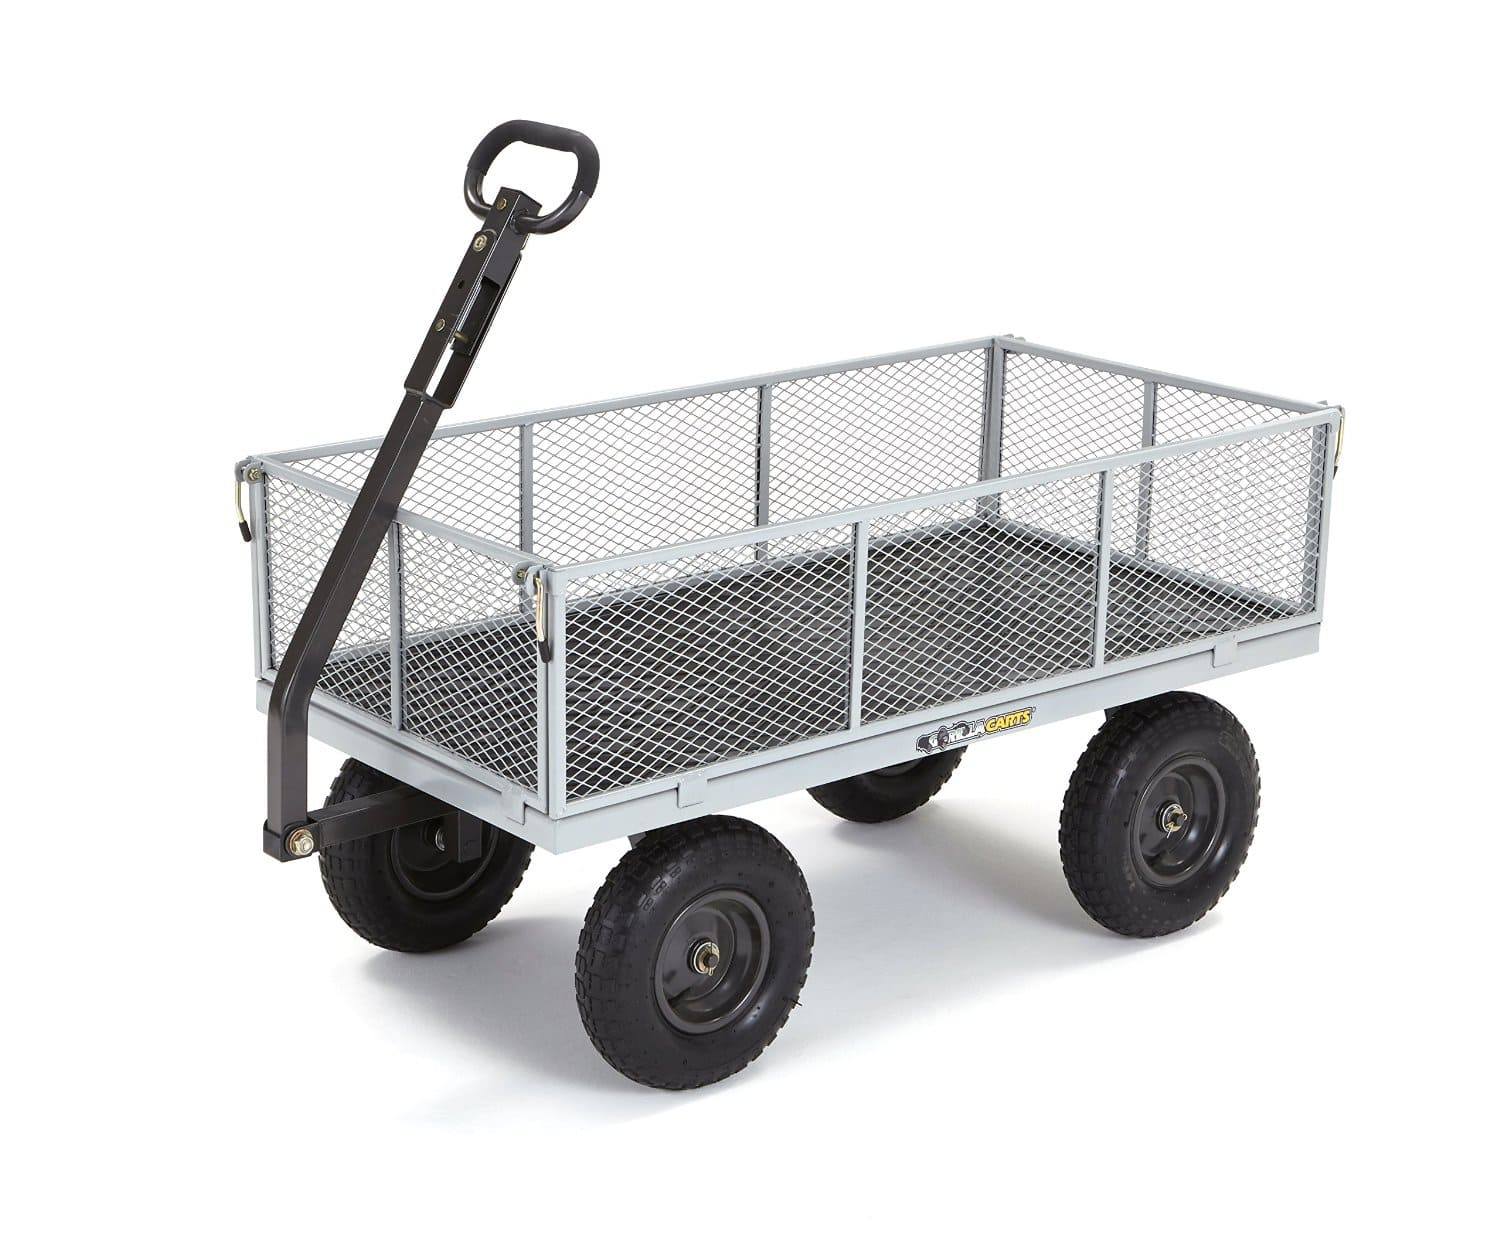 Gorilla Carts Garden & Yard Carts  from $98 + Free Shipping